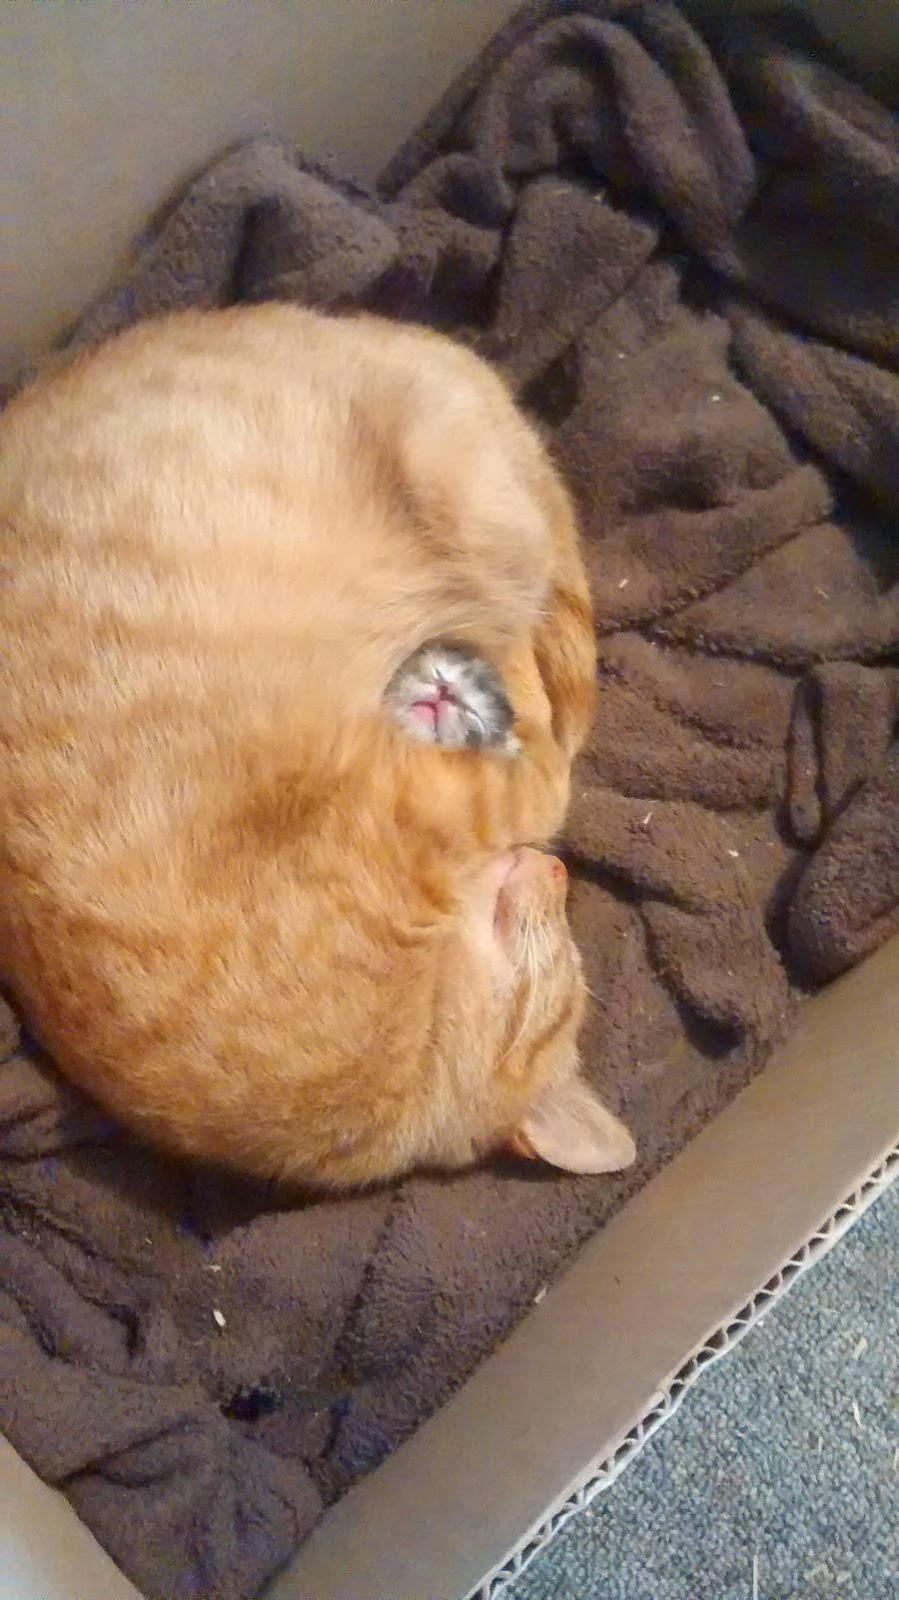 Funny cats - part 106 (40 pics + 10 gifs), cat and kitten pictures, cute cats, adorable cat pictures